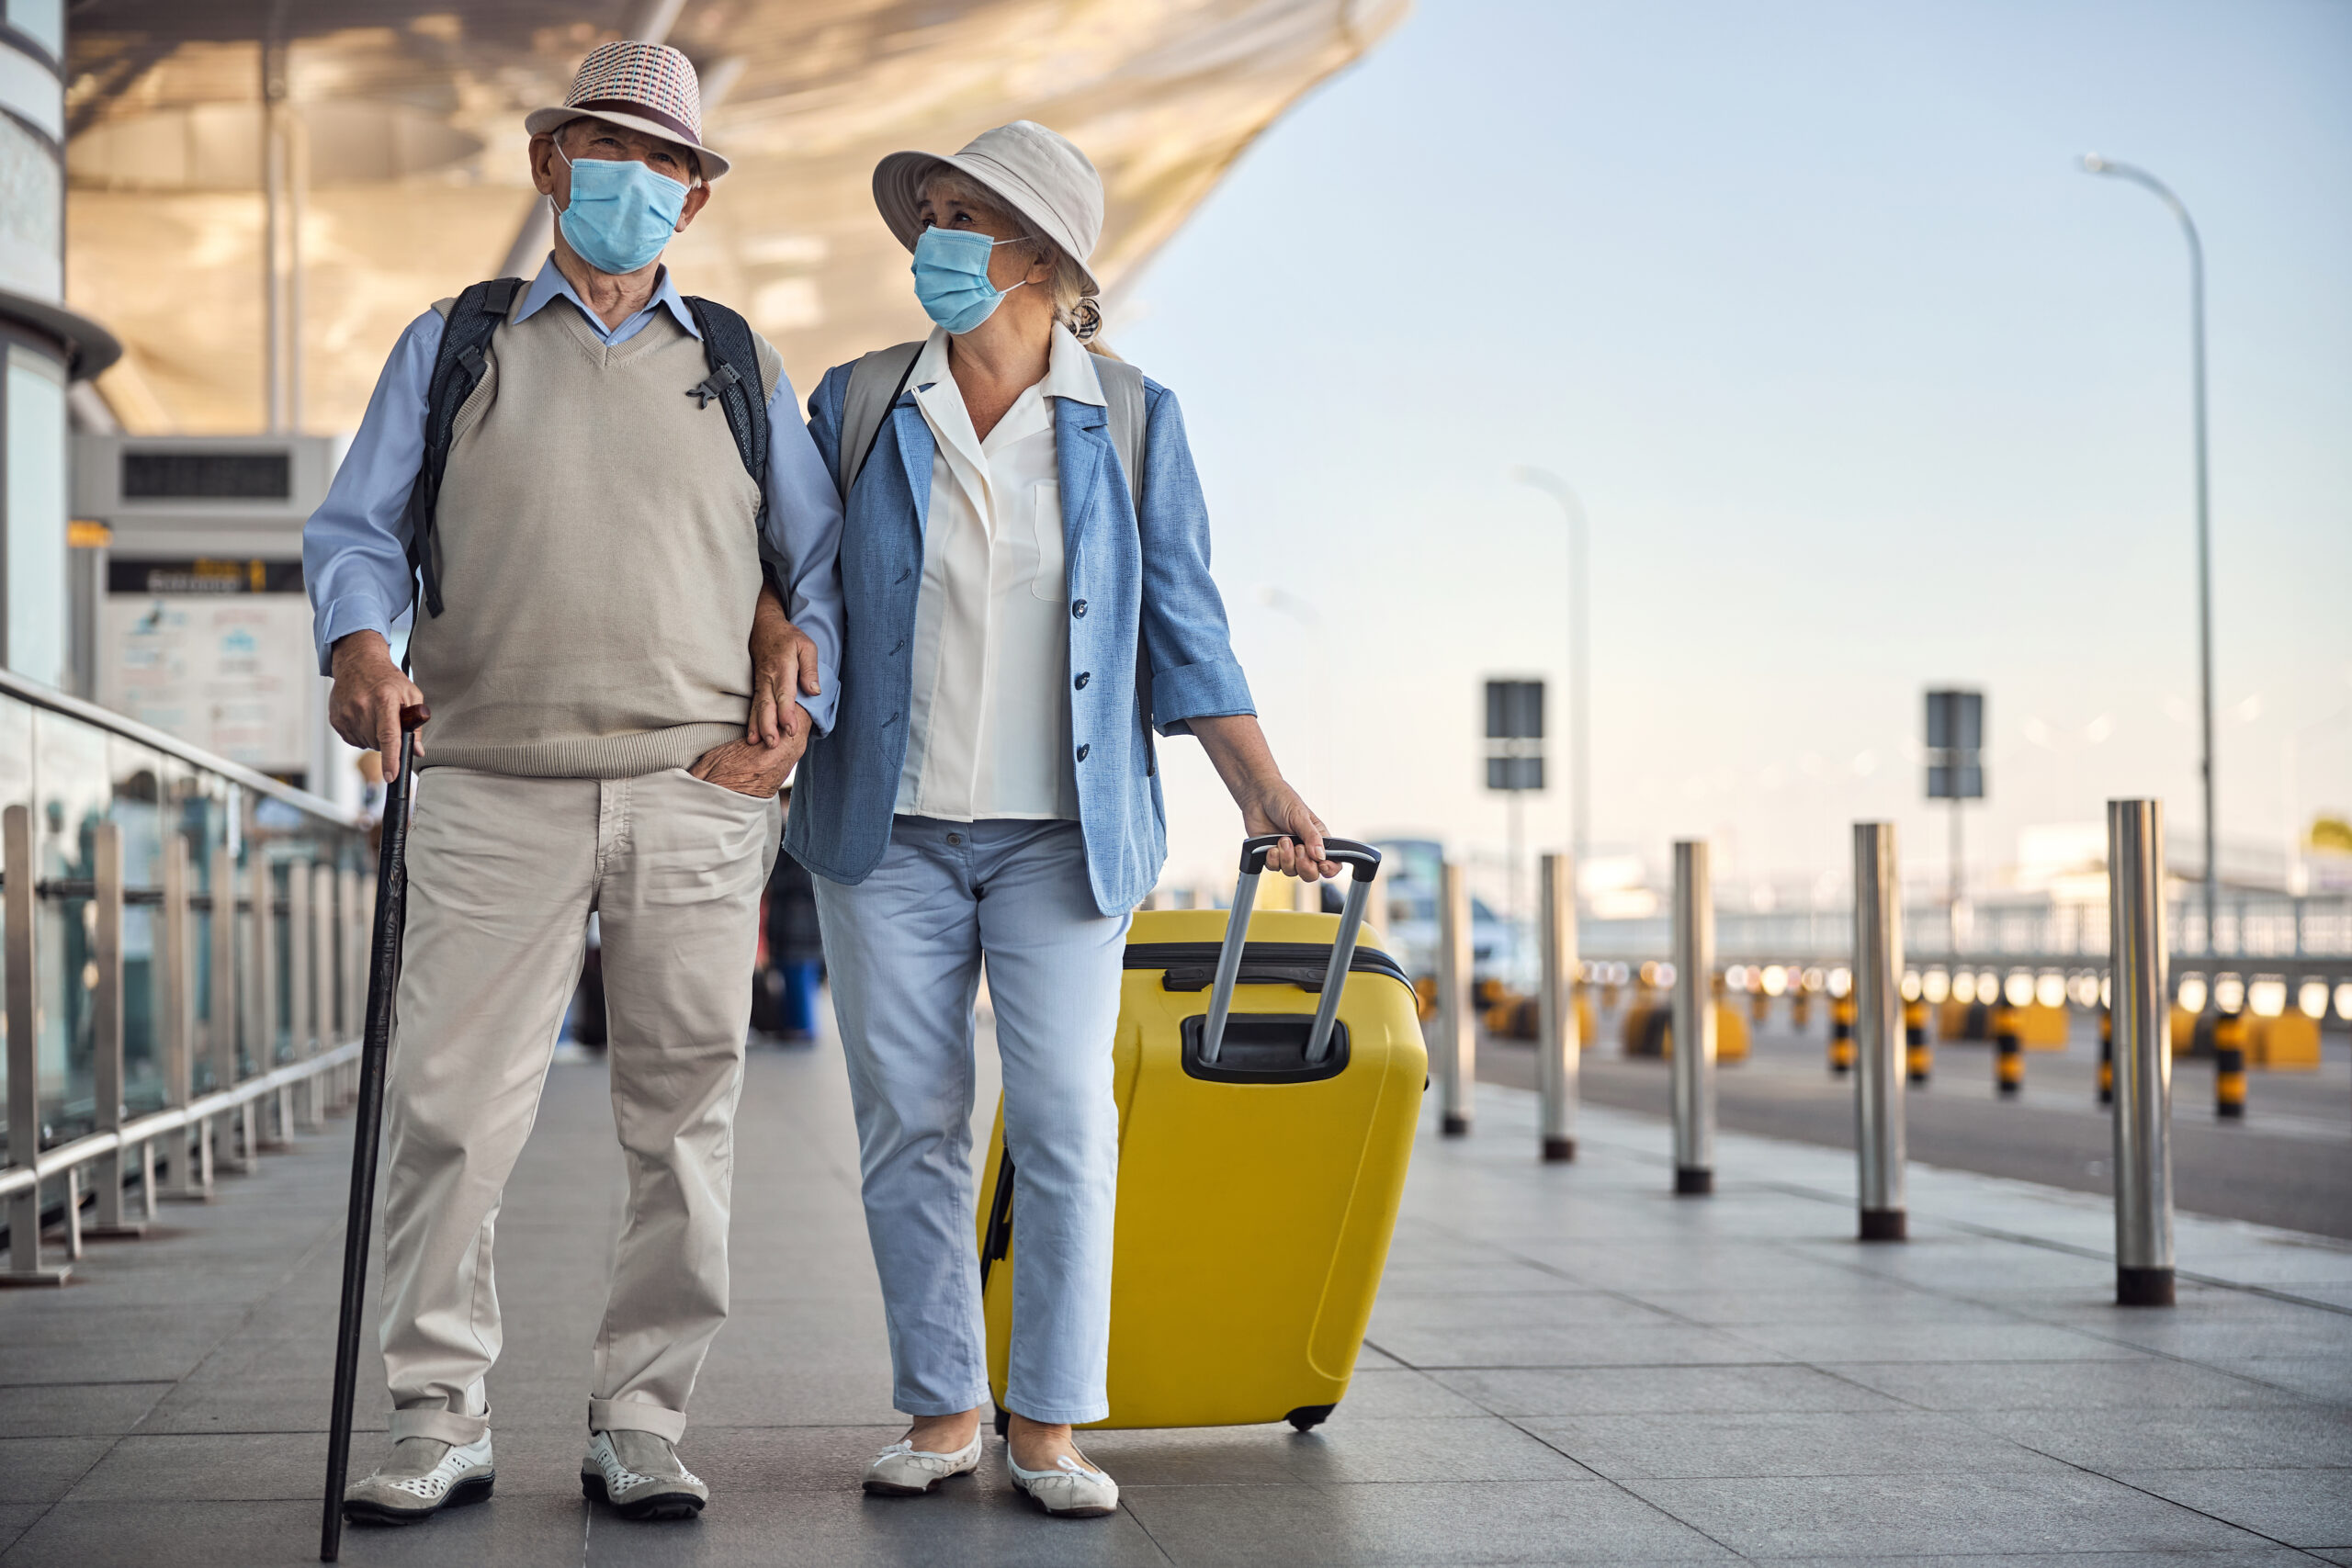 senior travellers at the airport